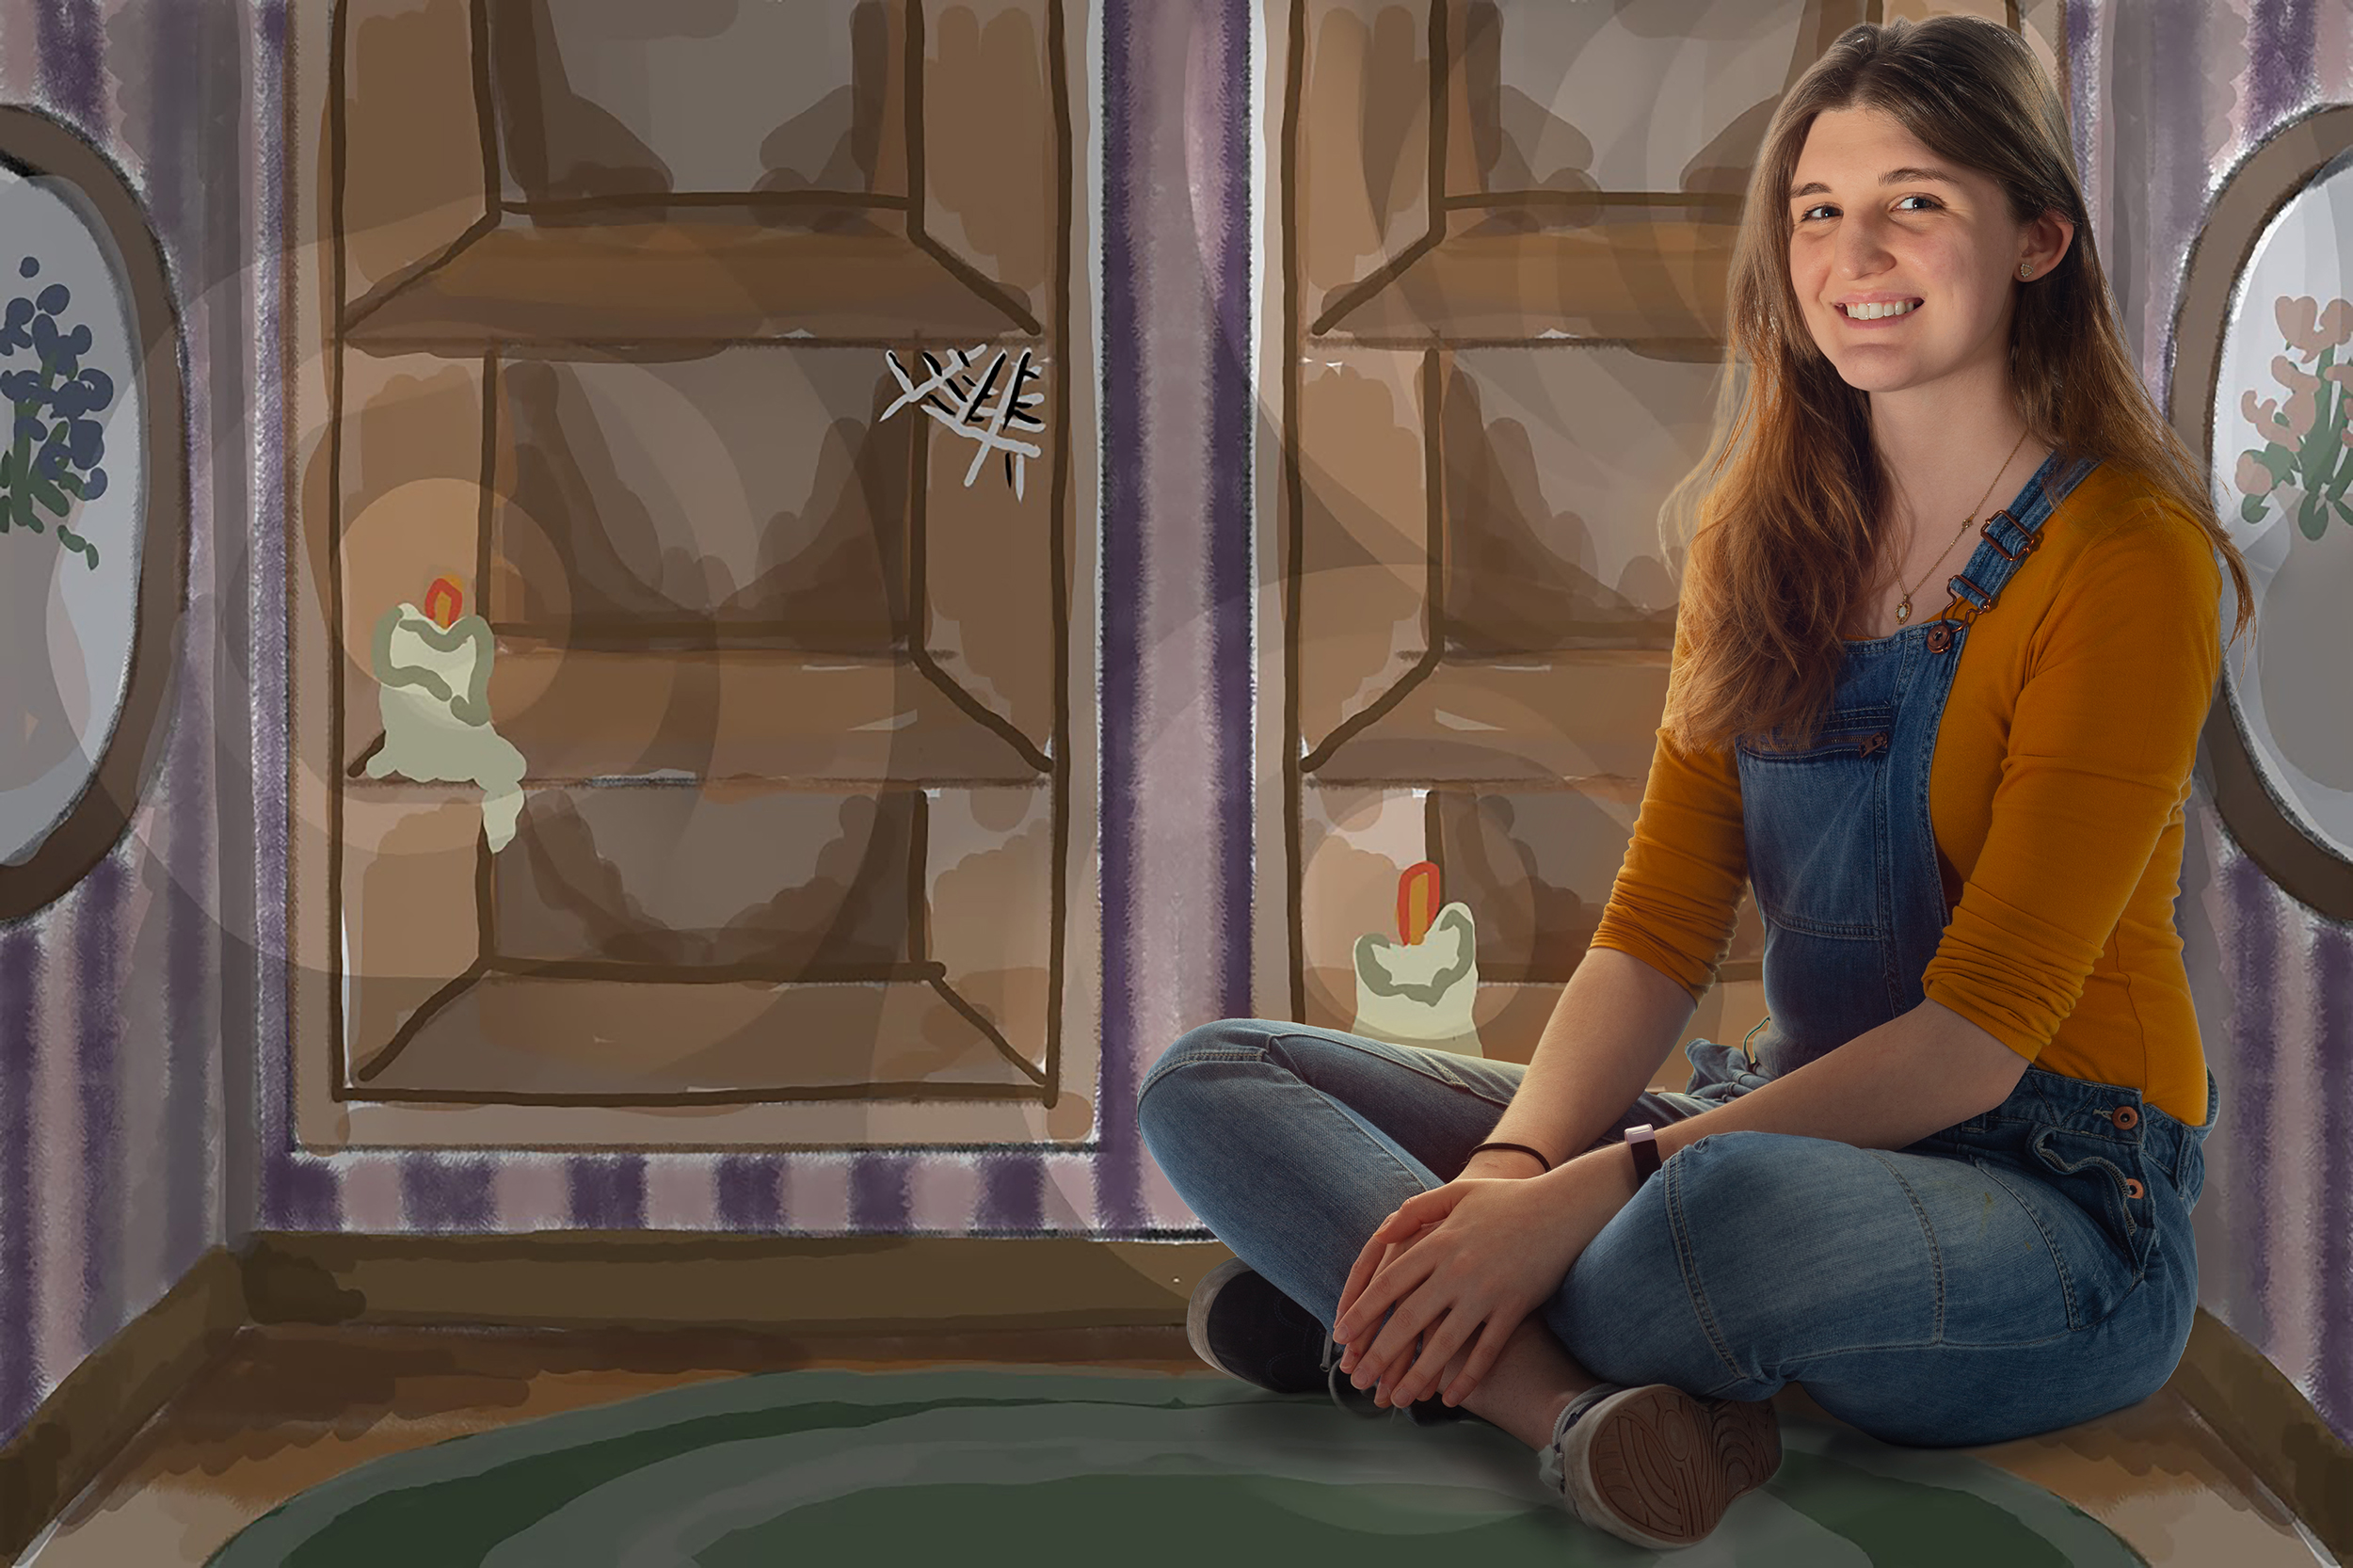 A composite image of Julie Toich set over a background of an illustration.